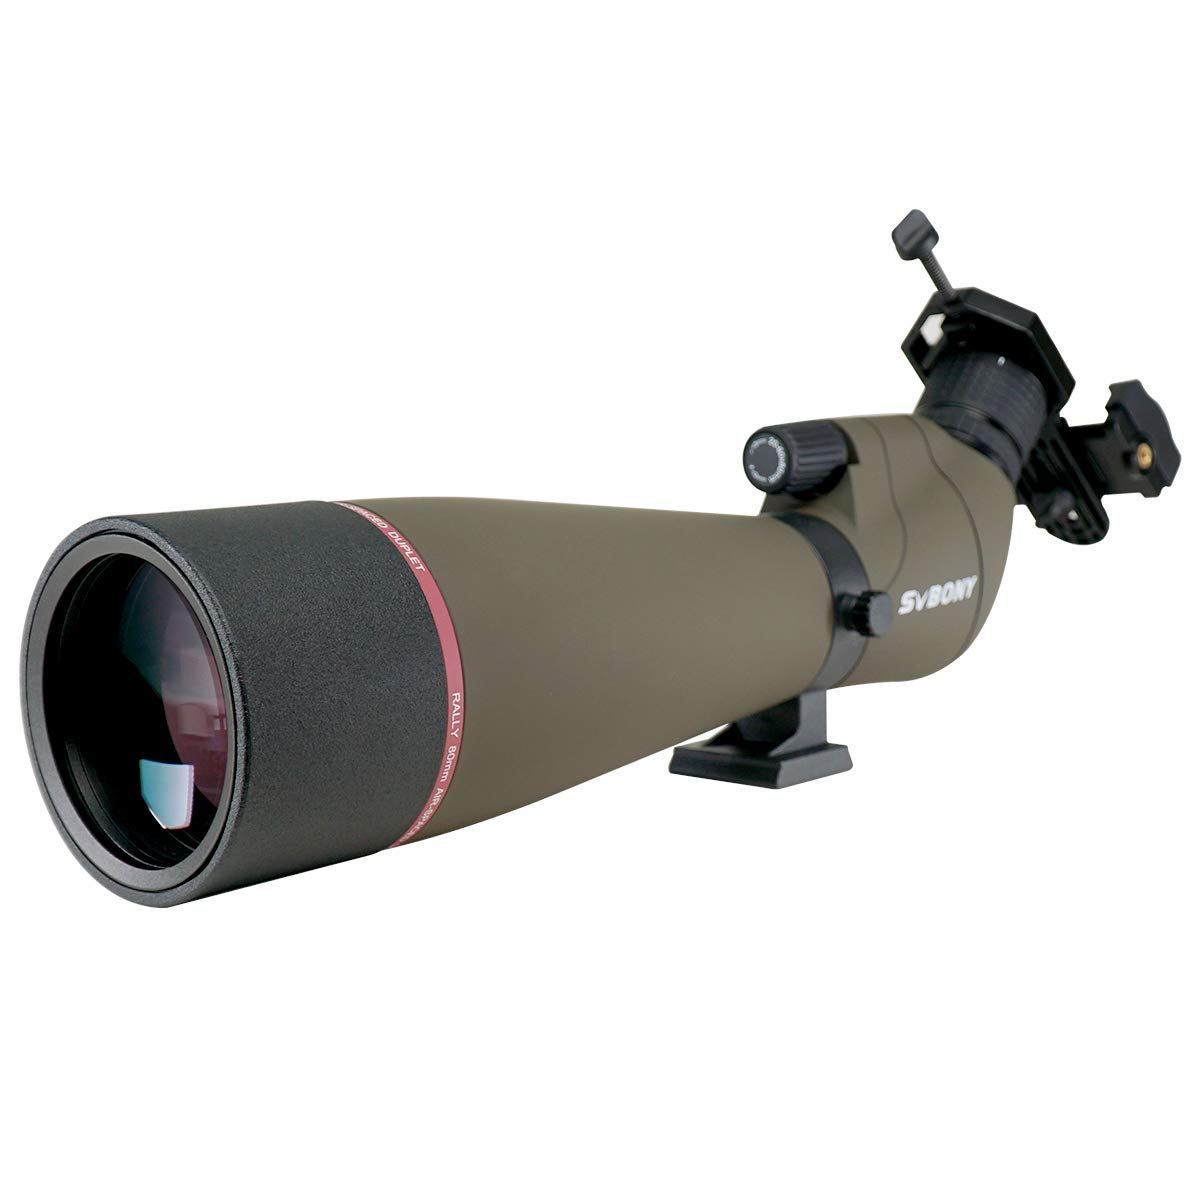 SVBONY SV13 Spotting Scope for Target Shooting Hunting Bird Watching IPX7 Waterproof Bak4 FMC Telescope with Phone Adapter(20-60x80mm Without Tripod) by SVBONY